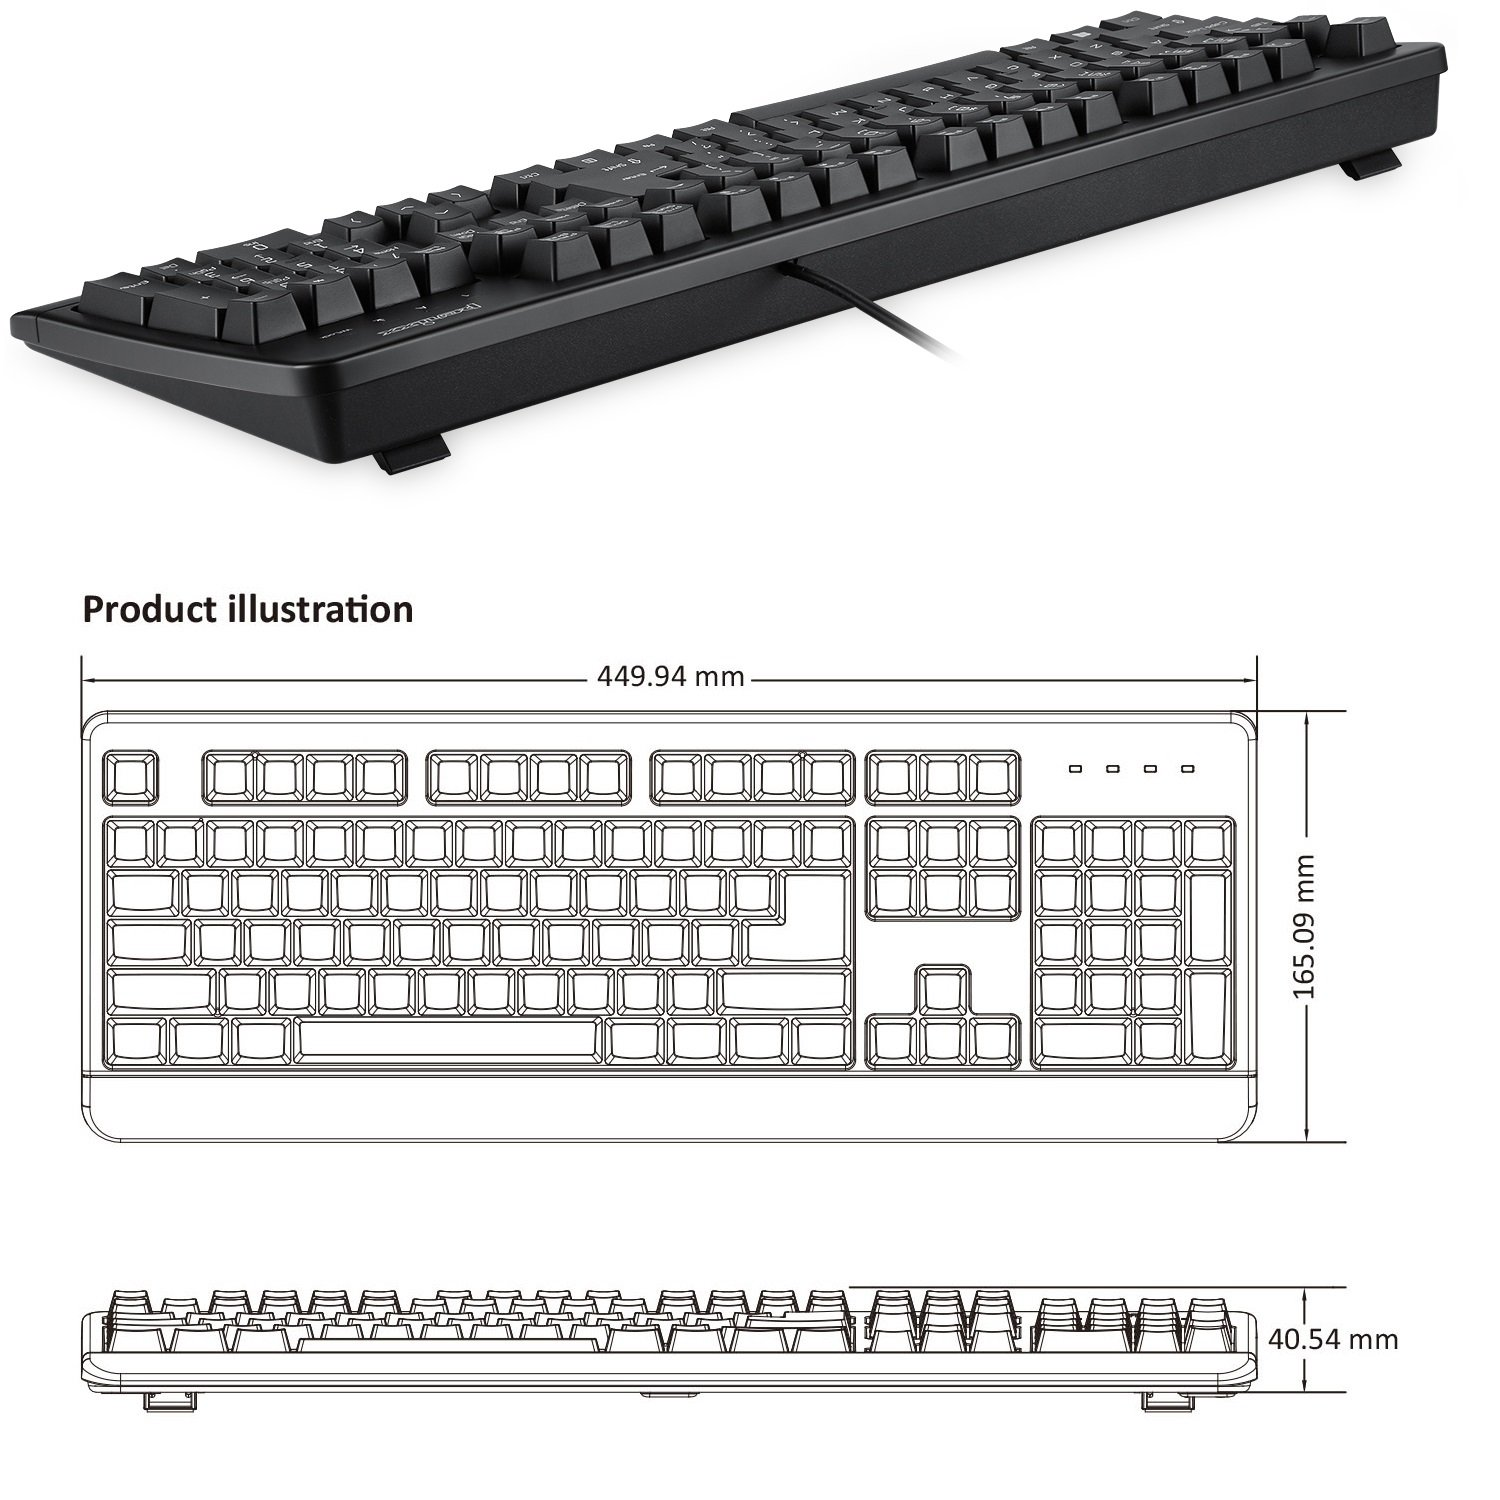 Perixx PERIBOARD-517 SGS Certified IP 65 Level US English Layout Fit with Medical and Industrial Environment Black Water Proof Keyboard